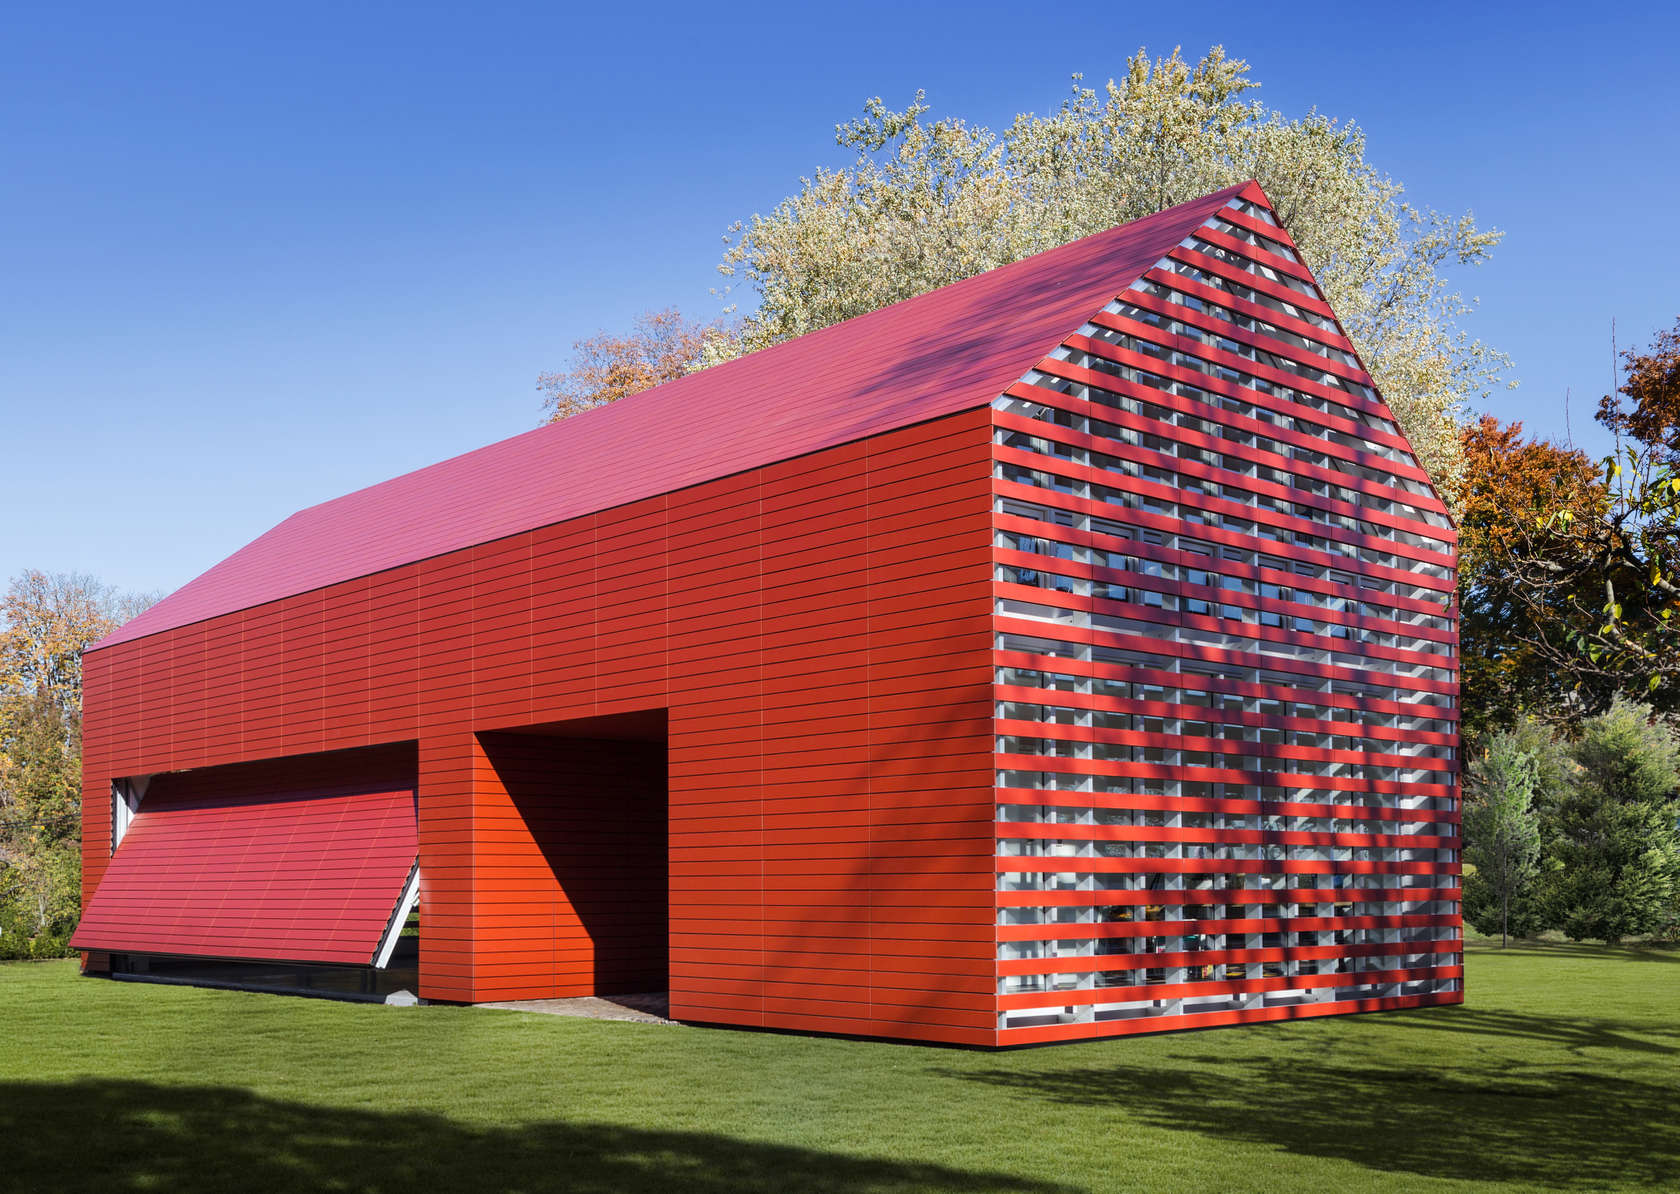 Overall view from other side of Red Barn designed by Roger Ferris + Partners